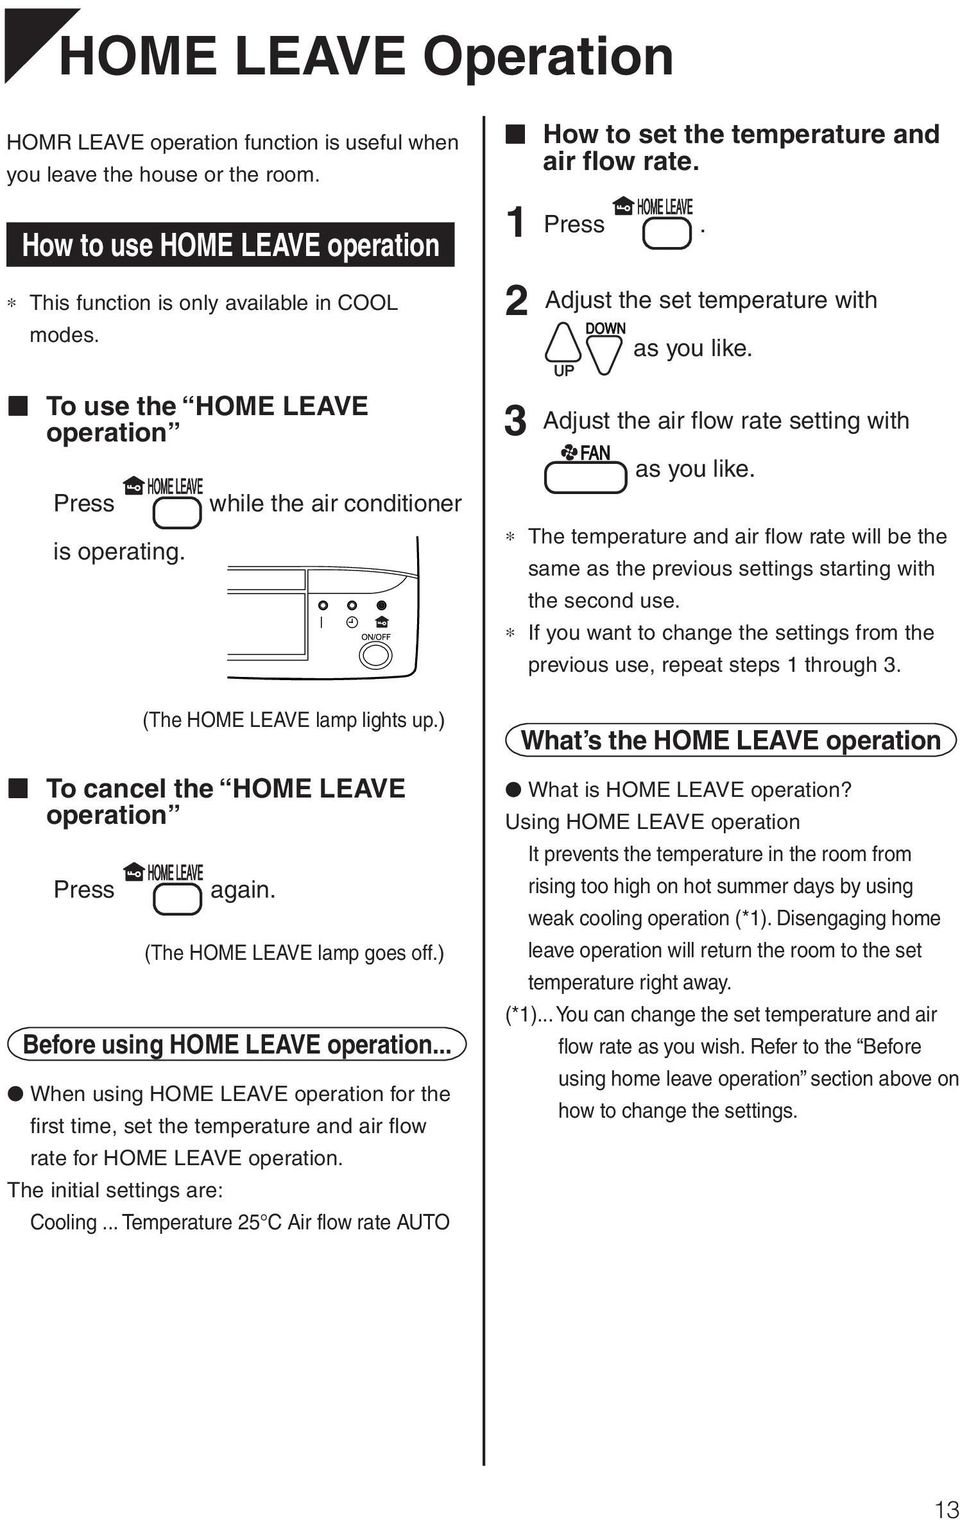 ) Before using HOME LEAVE operation... When using HOME LEAVE operation for the first time, set the temperature and air flow rate for HOME LEAVE operation. The initial settings are: Cooling.